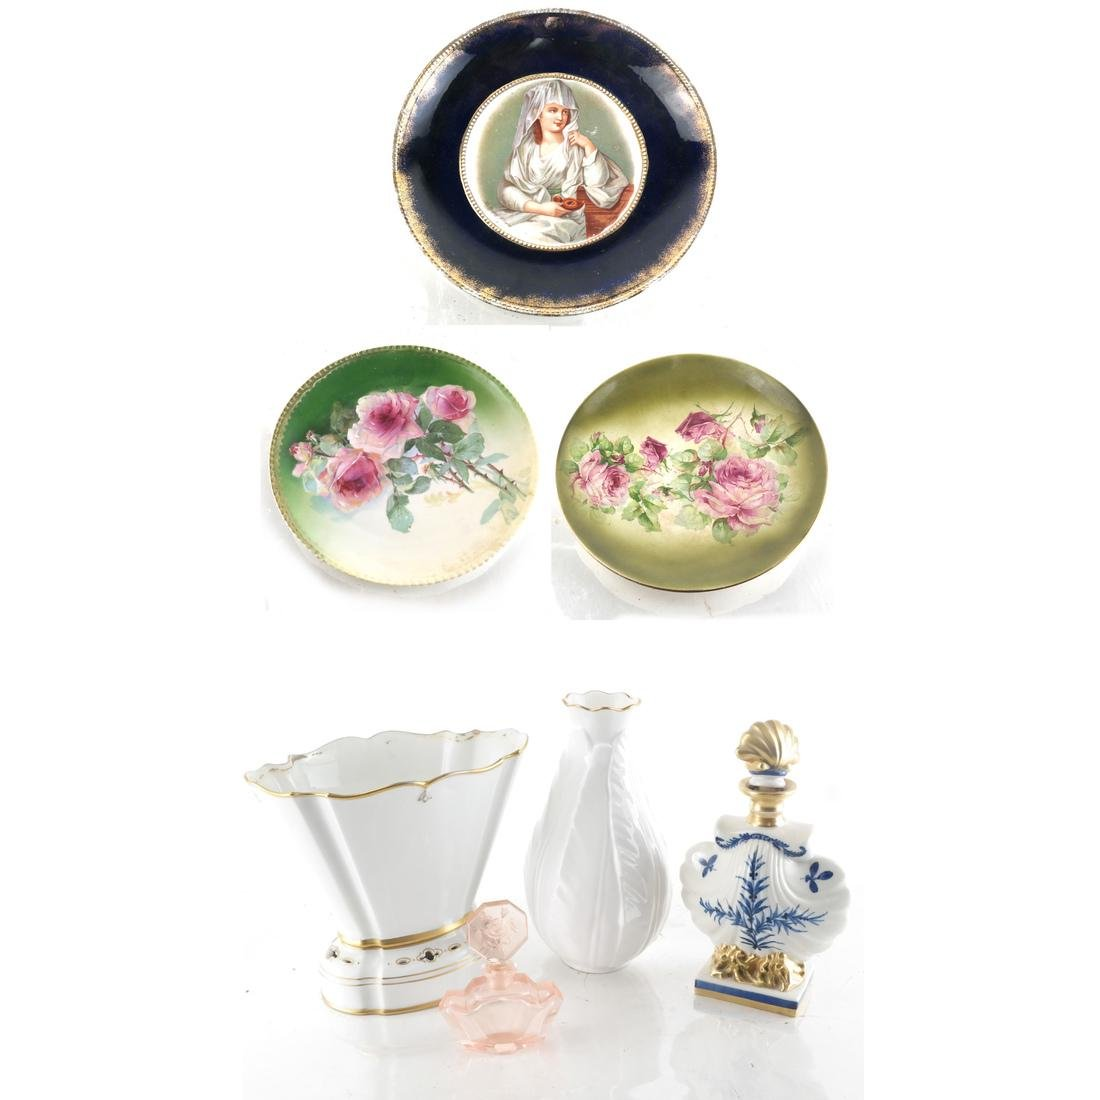 Group of Porcelain Decorative Items